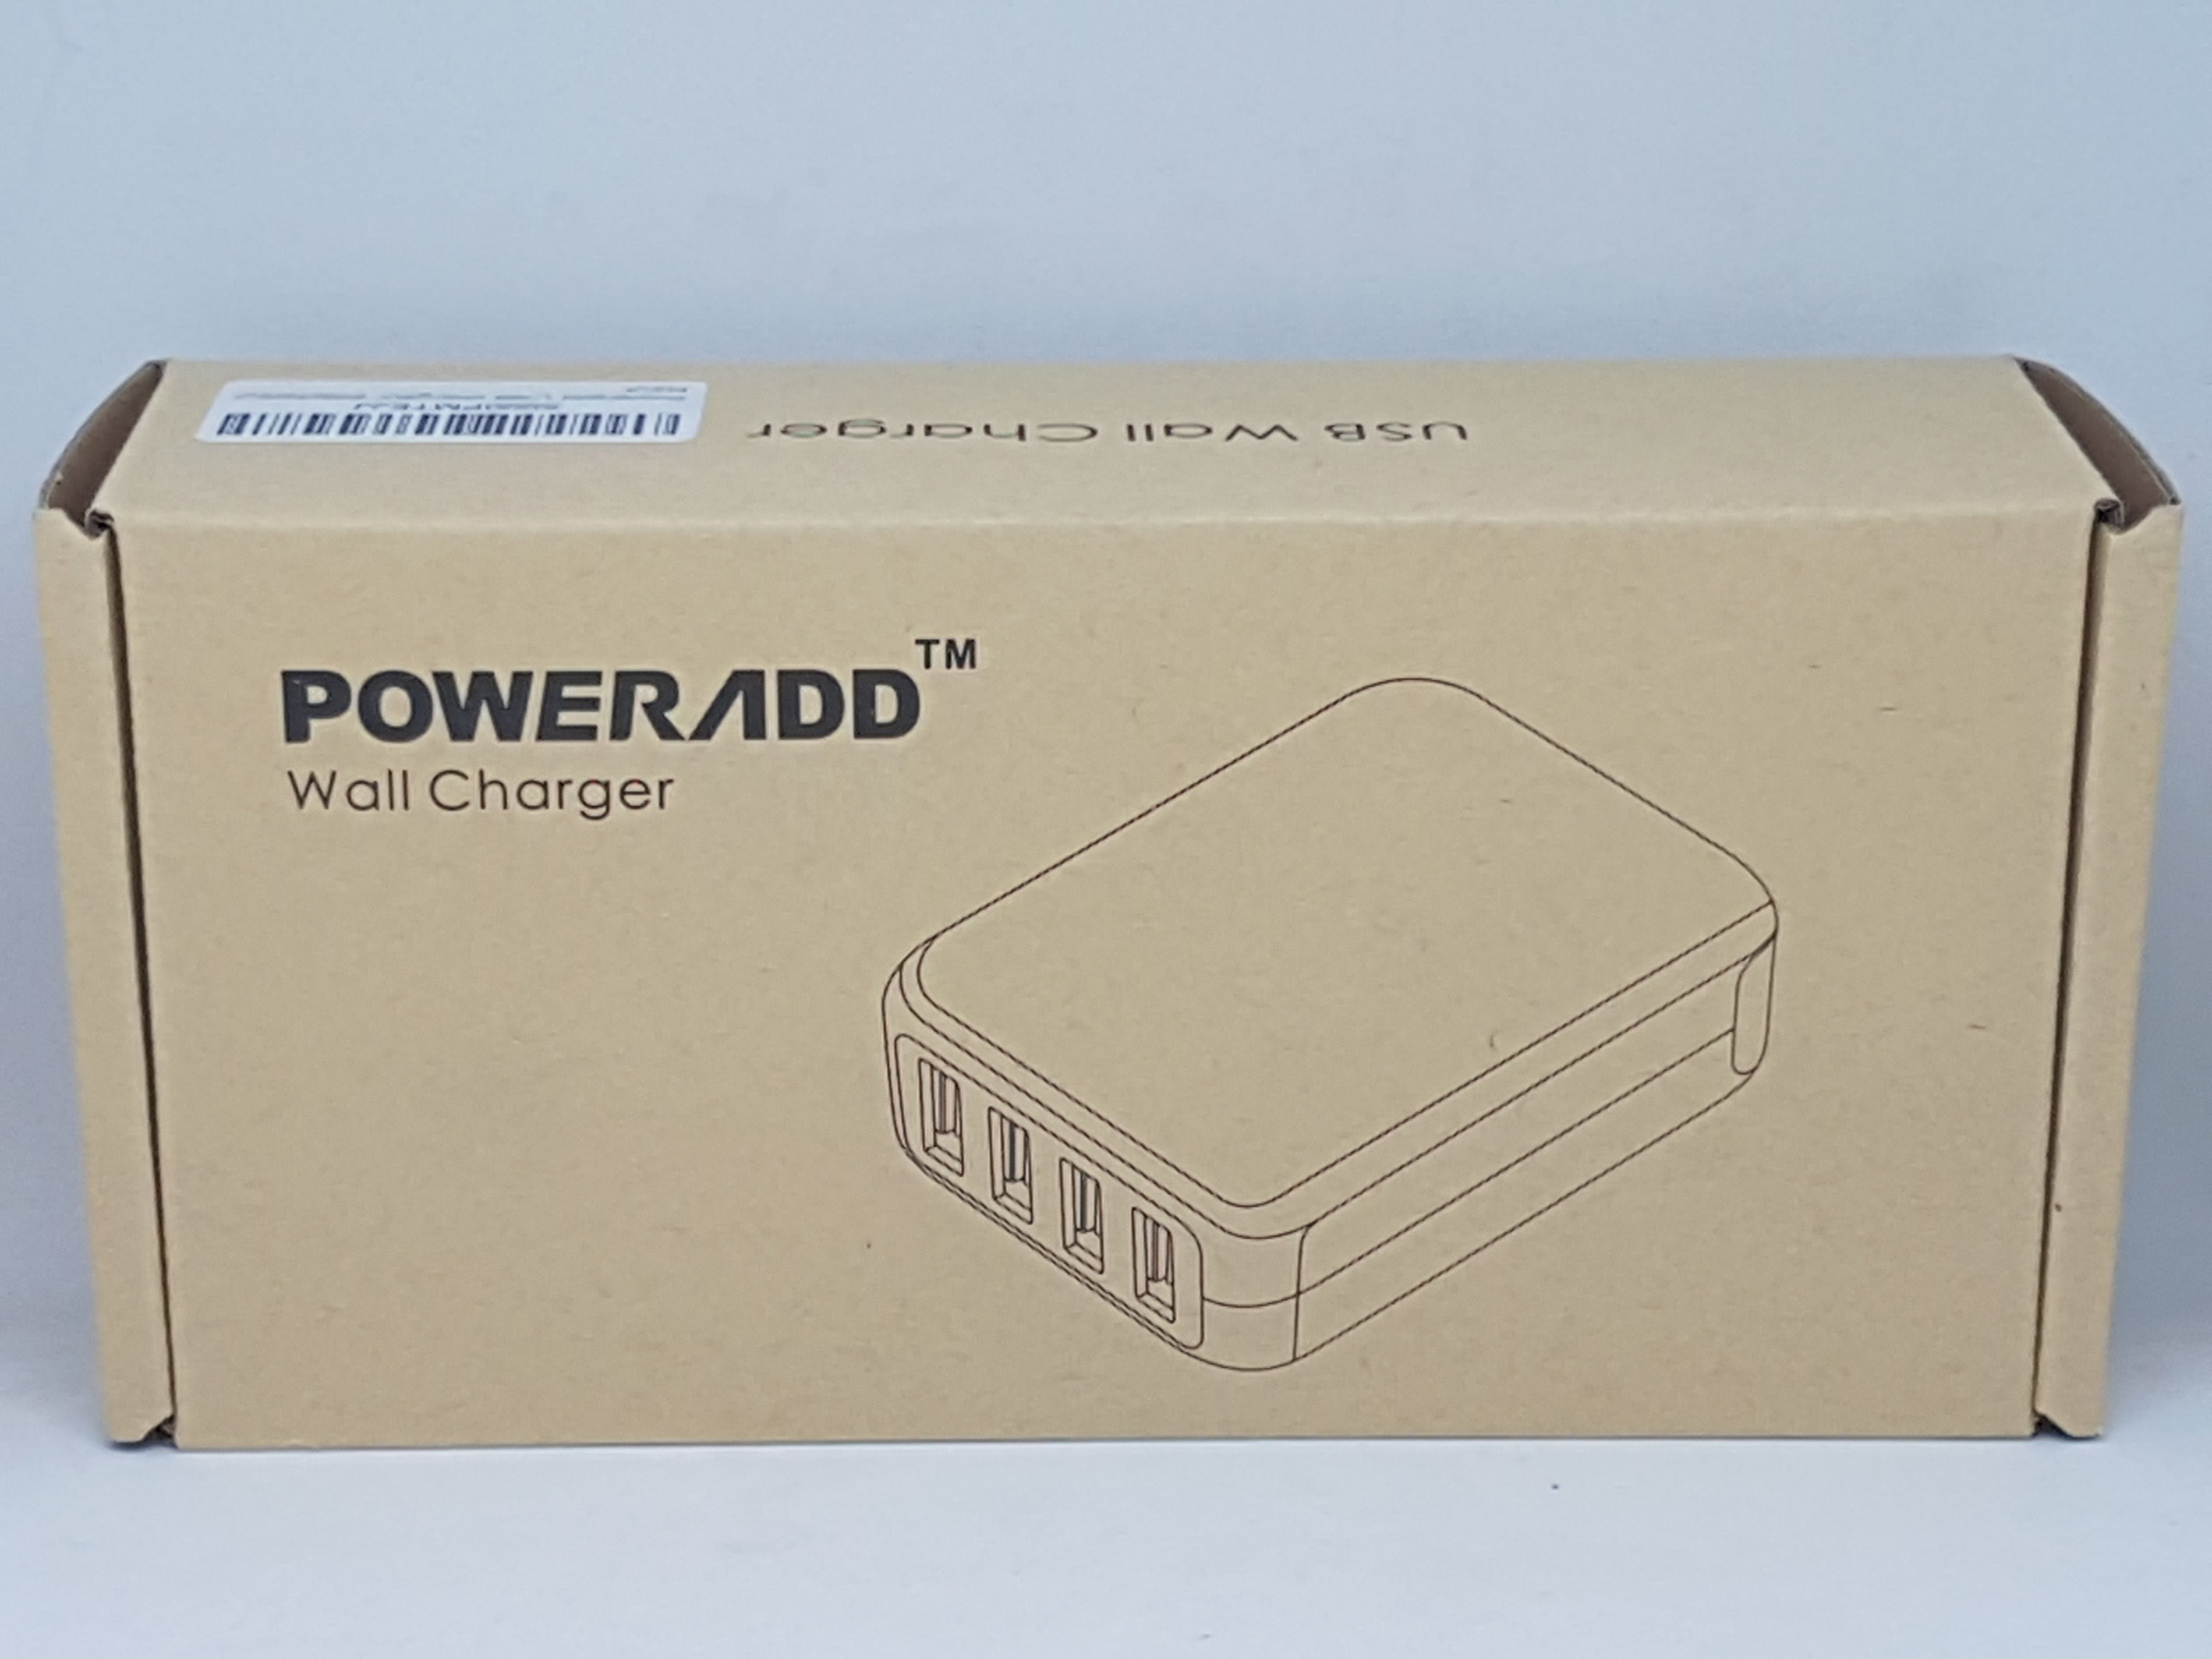 POWERADD-Chargeur-4-Ports-USB - POWERADD-Chargeur-4-Ports-USB-2.jpg